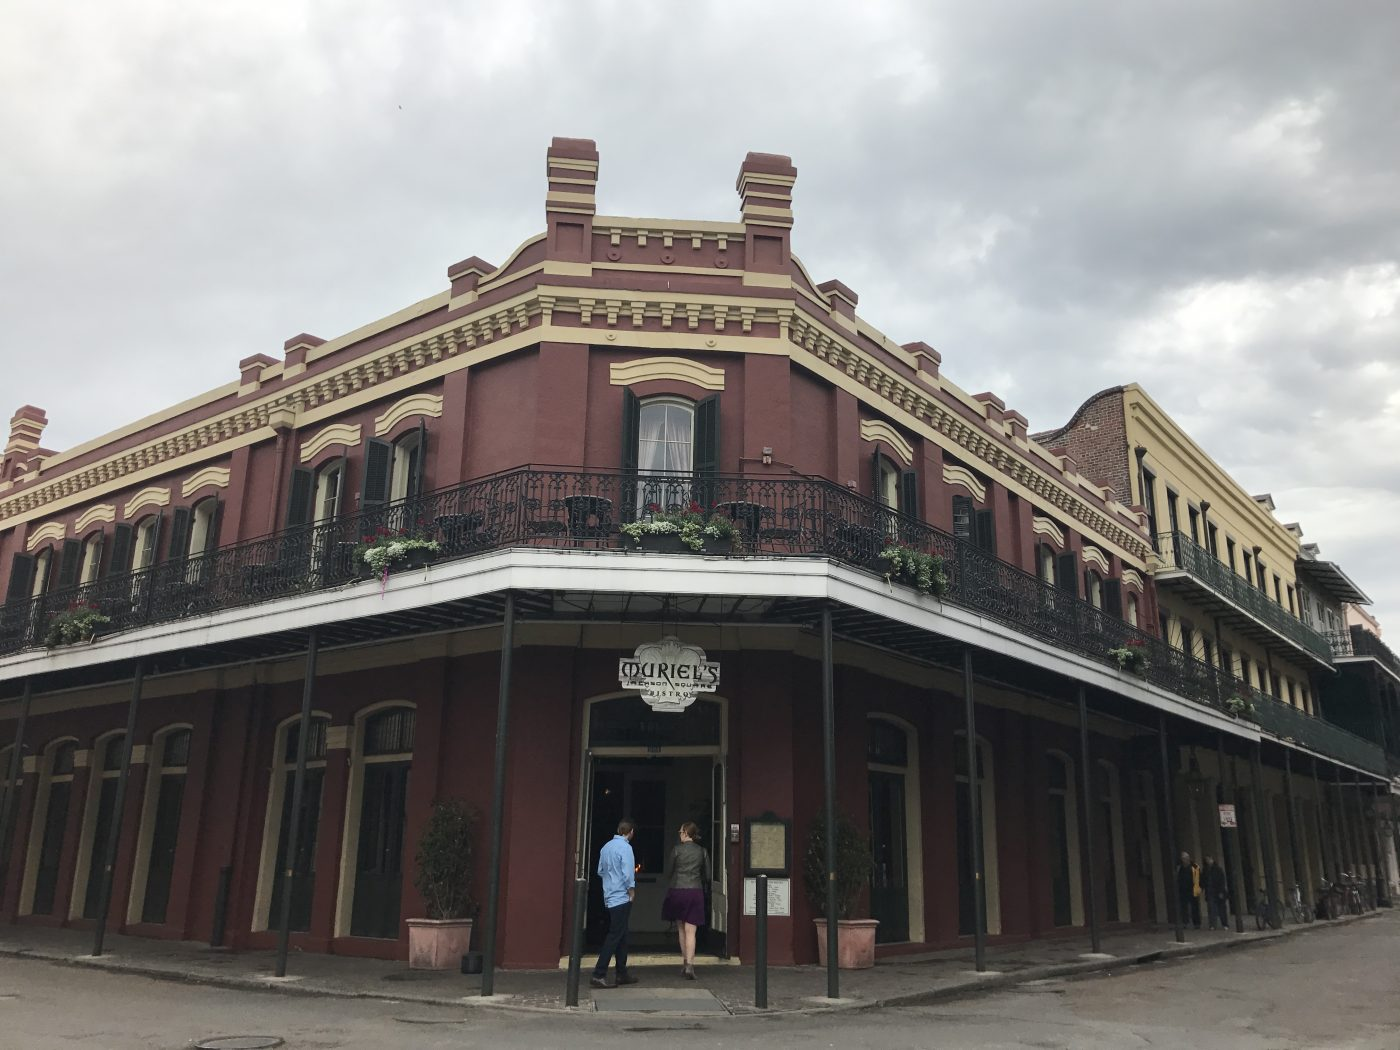 Best US Cities: Muriel's Jackson Square, New Orleans